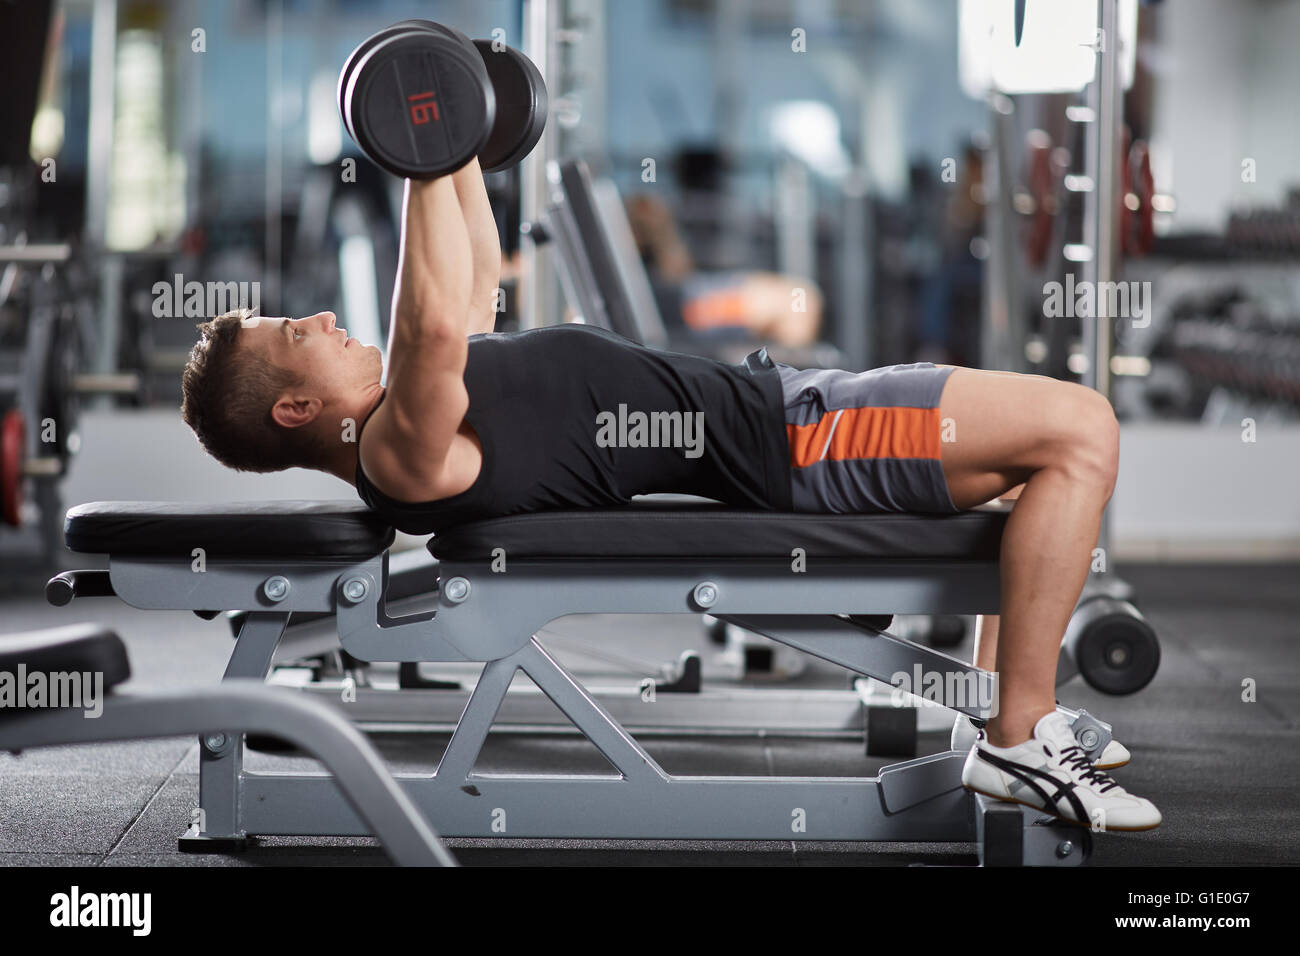 Man Doing Chest Workout Bench Press With Dumbbells